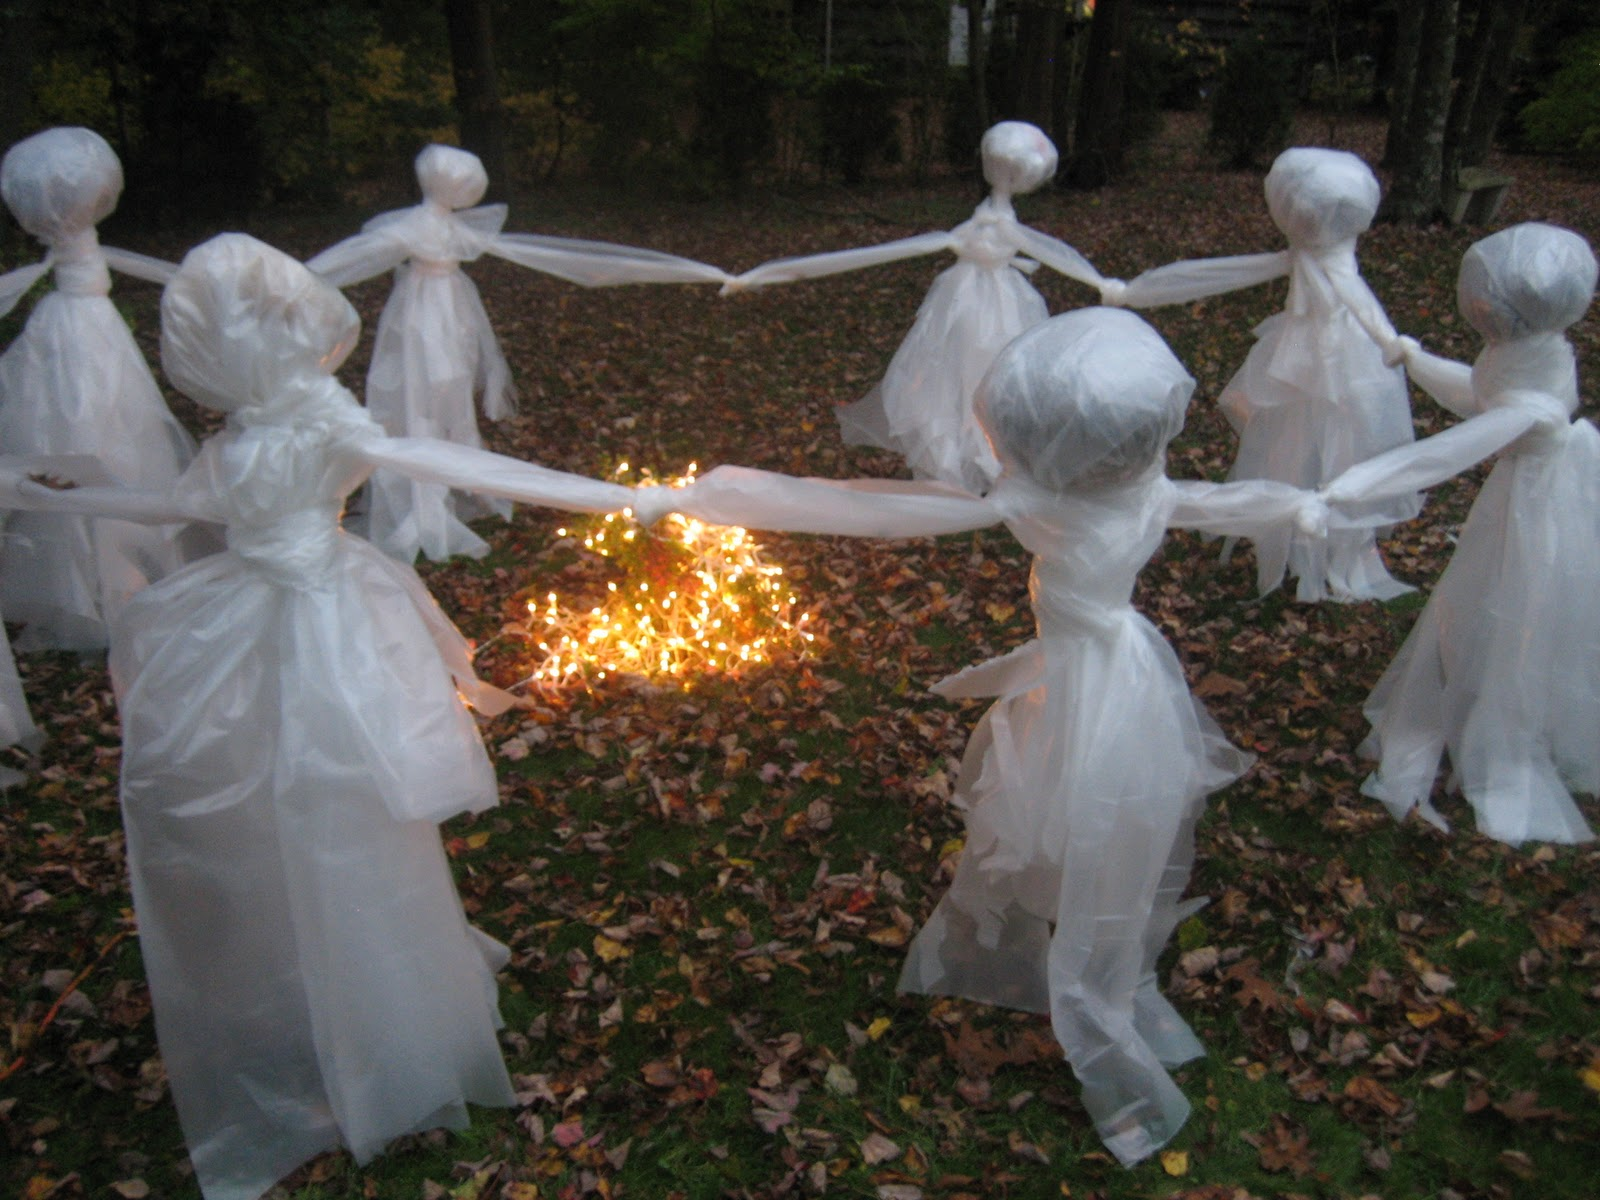 Homemade scary halloween decorations outside - Lawn Ghost Re Post